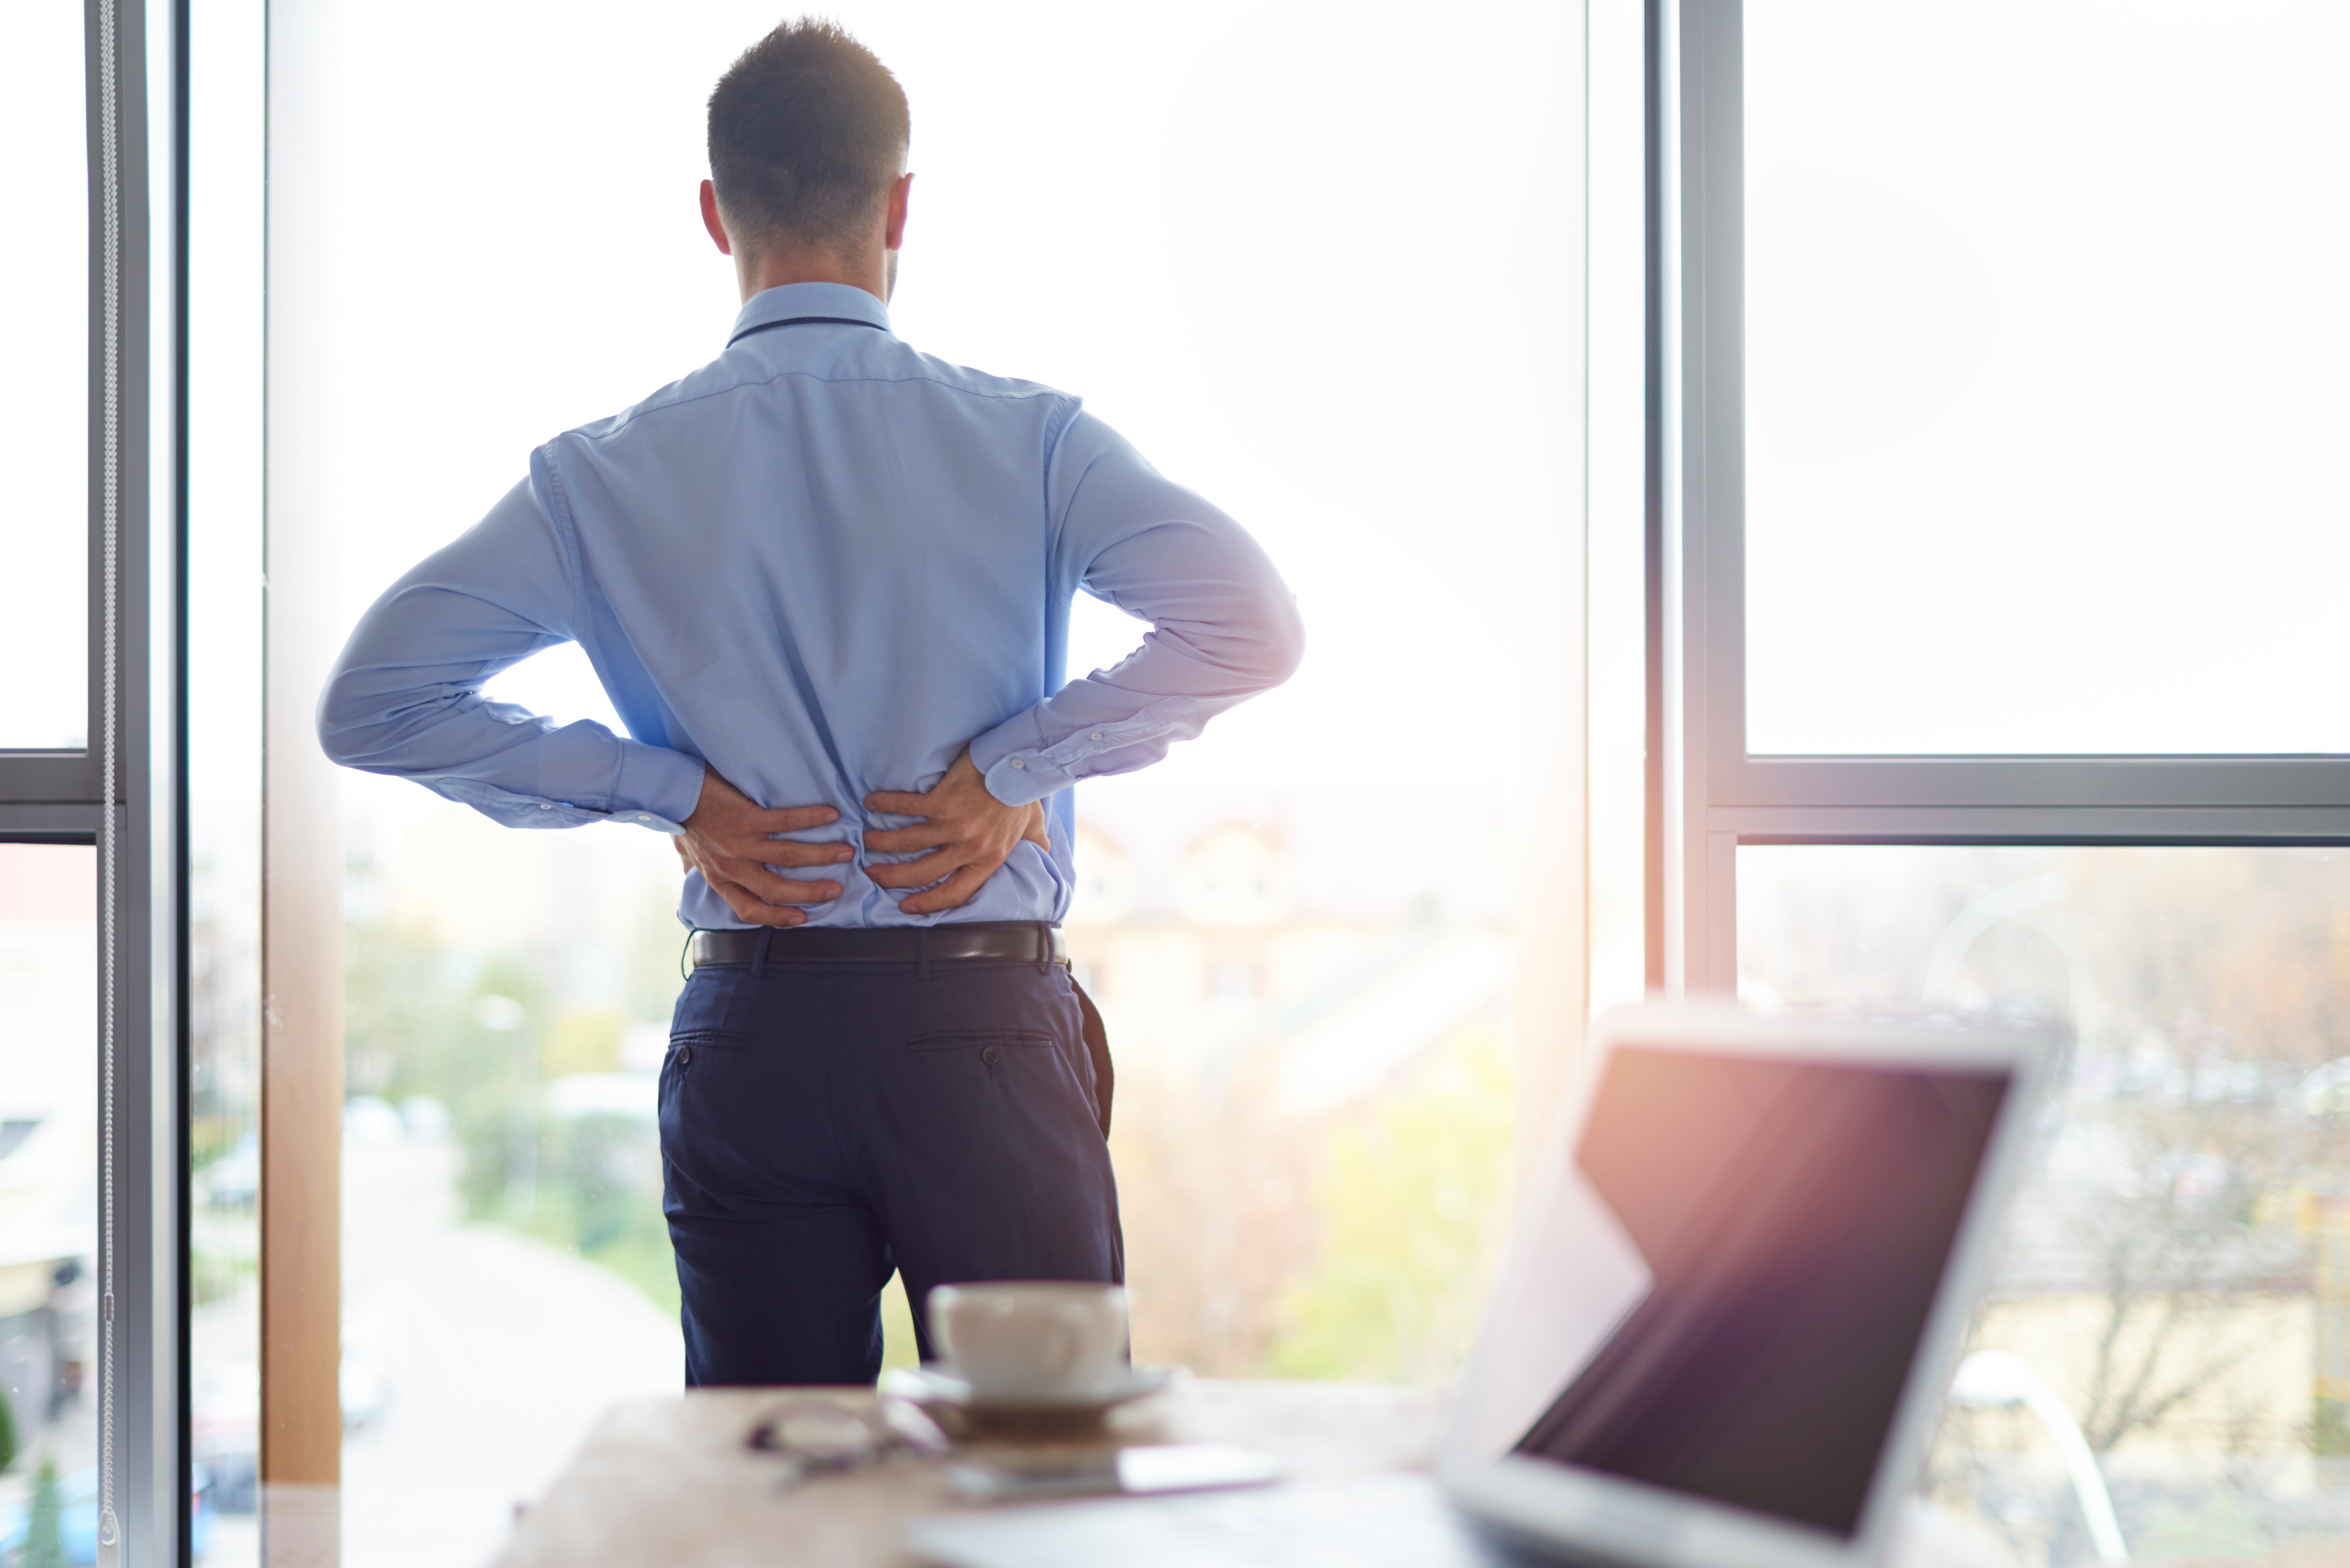 back-pain-of-business-person-RN98HK3